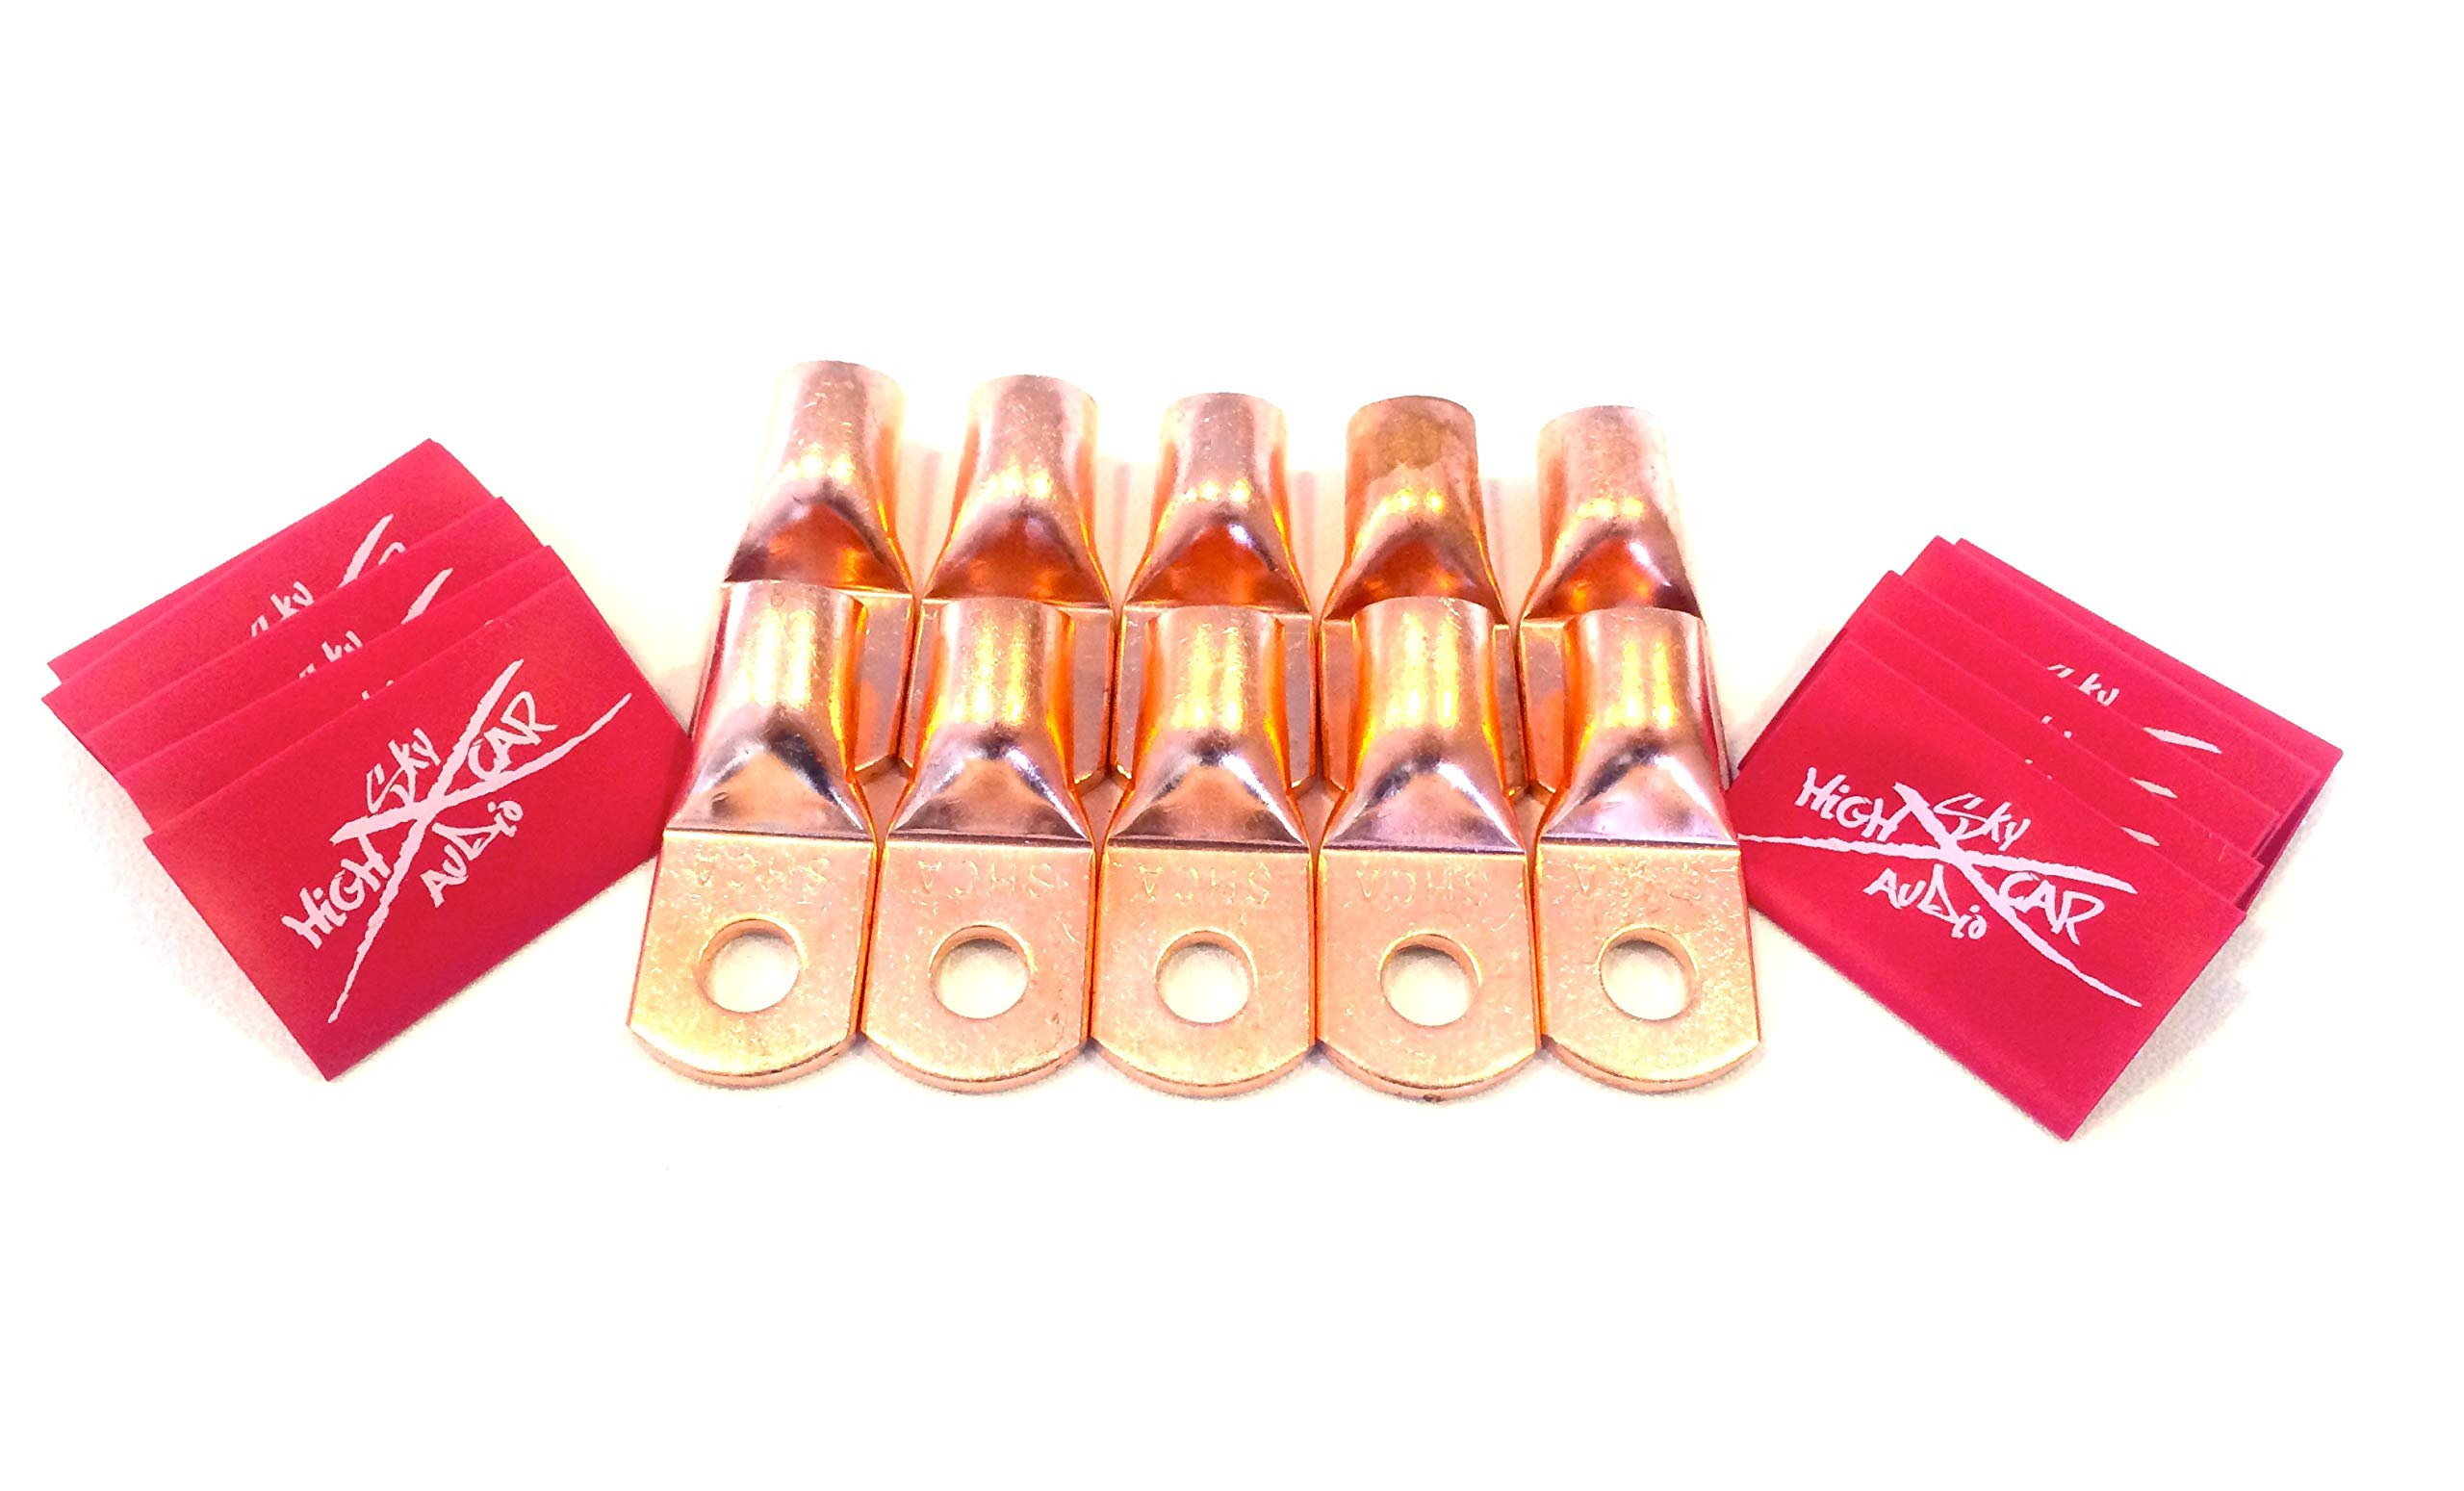 Sky High Car Audio (10) 1/0 Gauge Copper Ring Terminals 3/8'' RED Heat Shrink Tubing LUGS by Sky High Car Audio